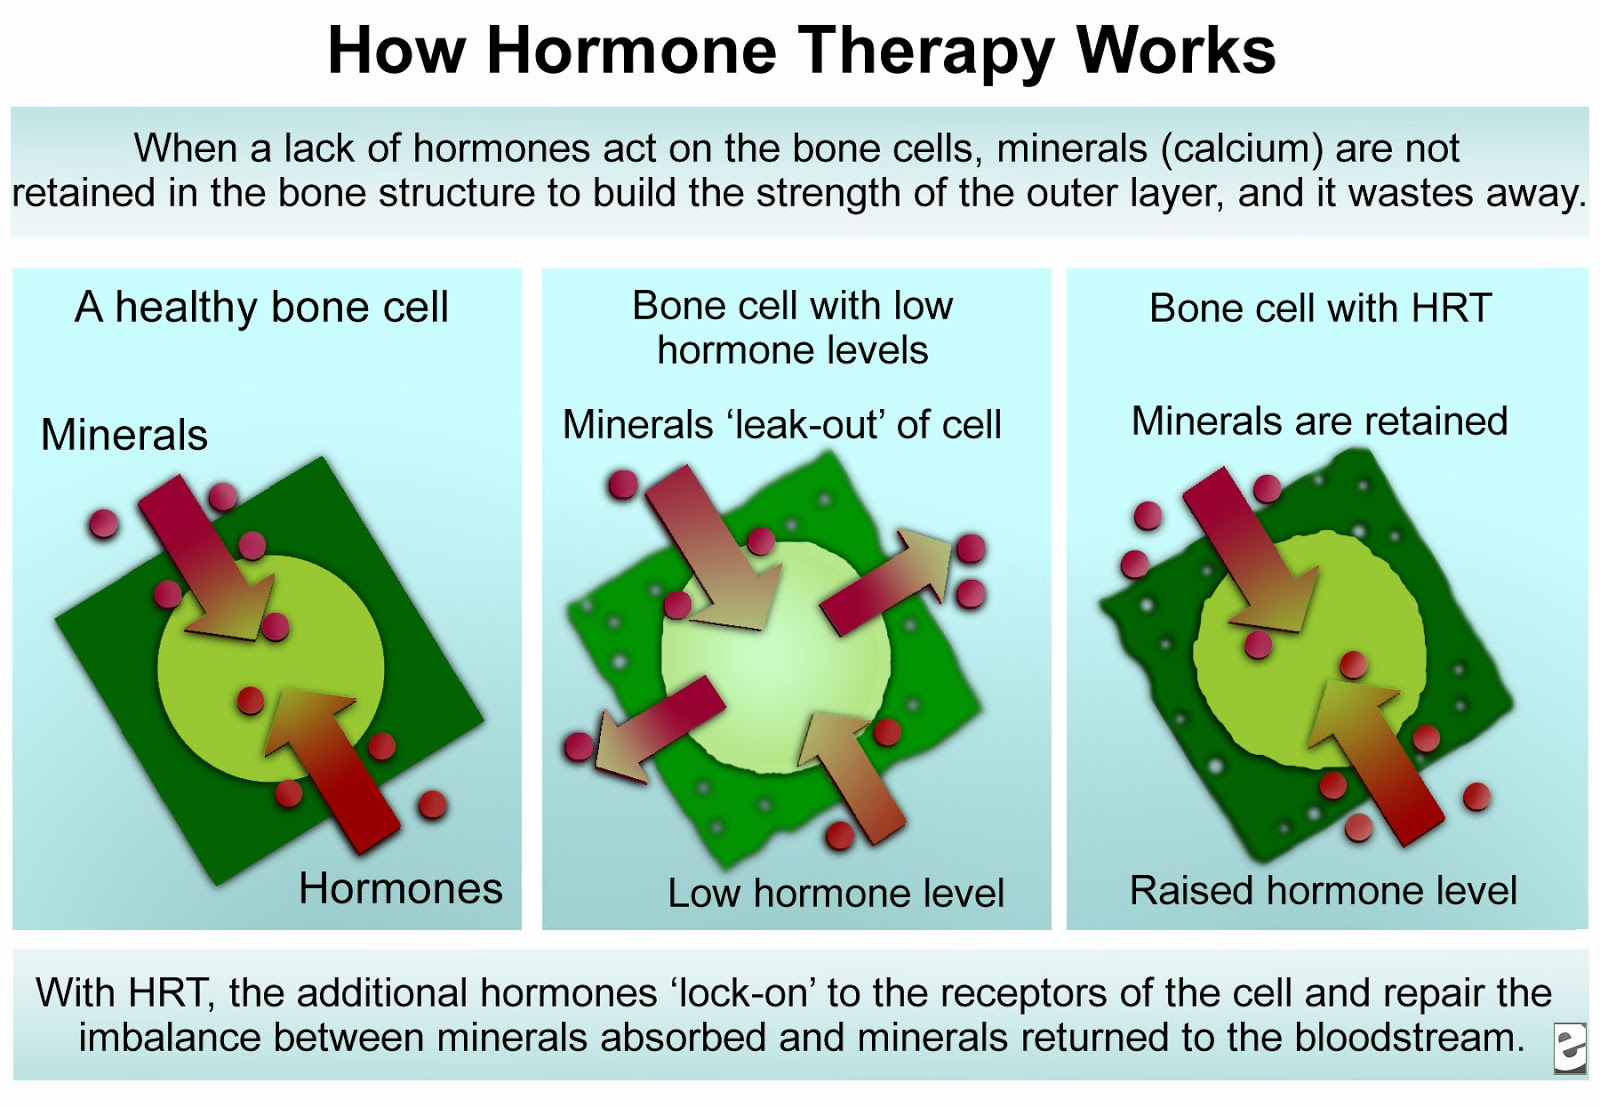 hormone replacement therapy(HRT)